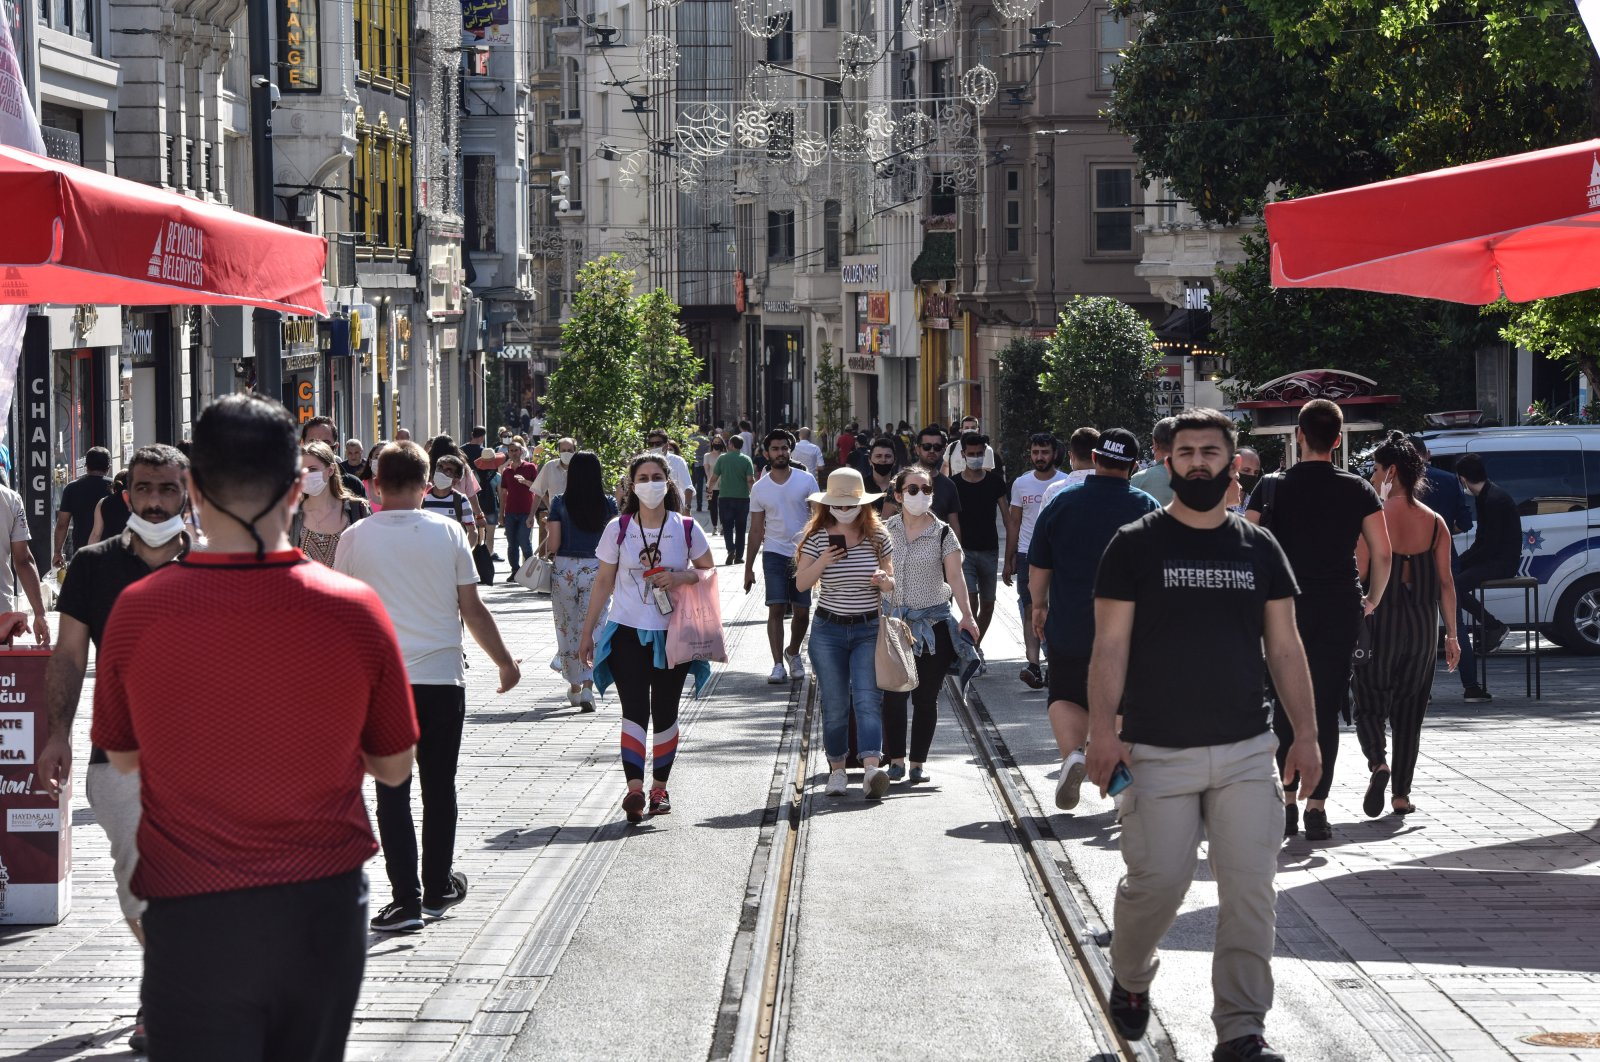 People walk in Taksim's historic Istiklal Street, Istanbul, June 8, 2020. (DHA Photo)